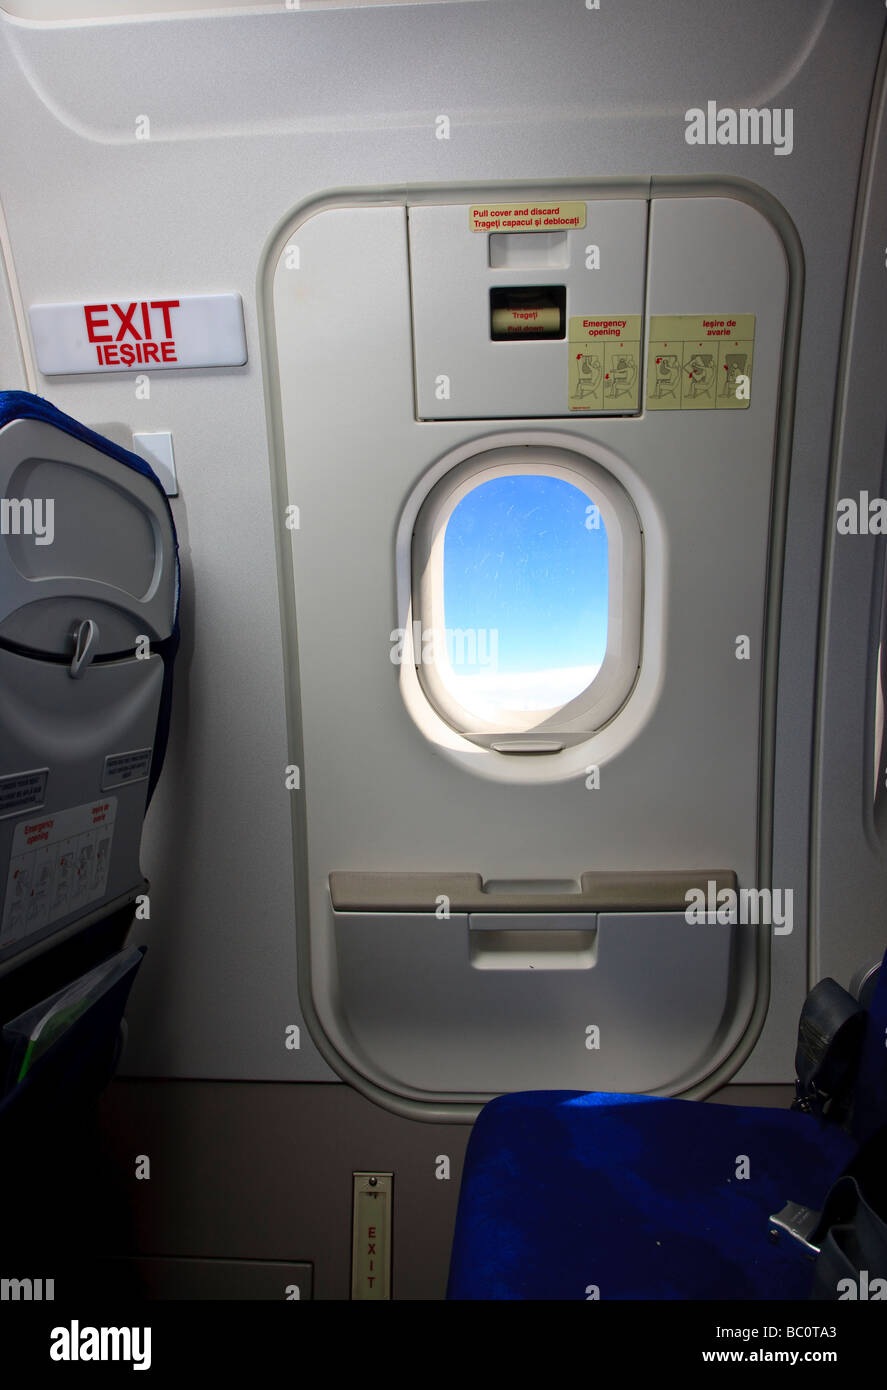 Emergency exit door on Airbus airplane of the romanian Tarom air line - Stock Image & Emergency Exit Door Plane Stock Photos \u0026 Emergency Exit Door Plane ... Pezcame.Com